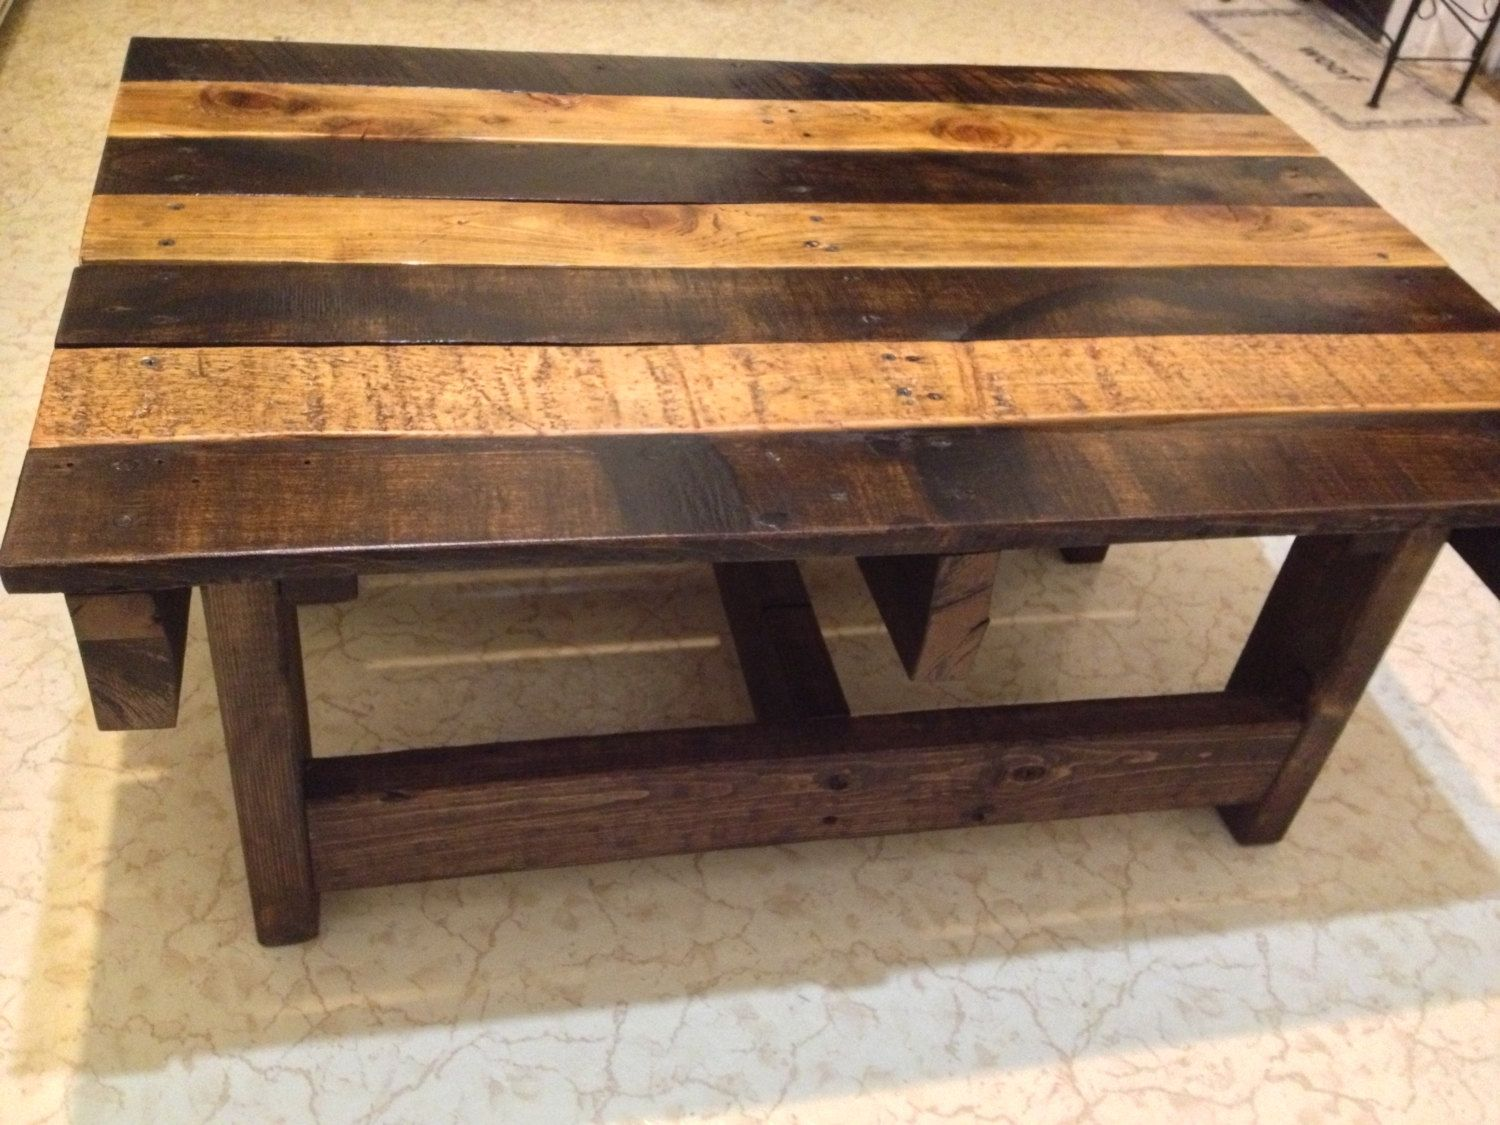 Hand crafted handmade reclaimed rustic pallet wood coffee table by kevin davis woodwork Unique rustic coffee tables